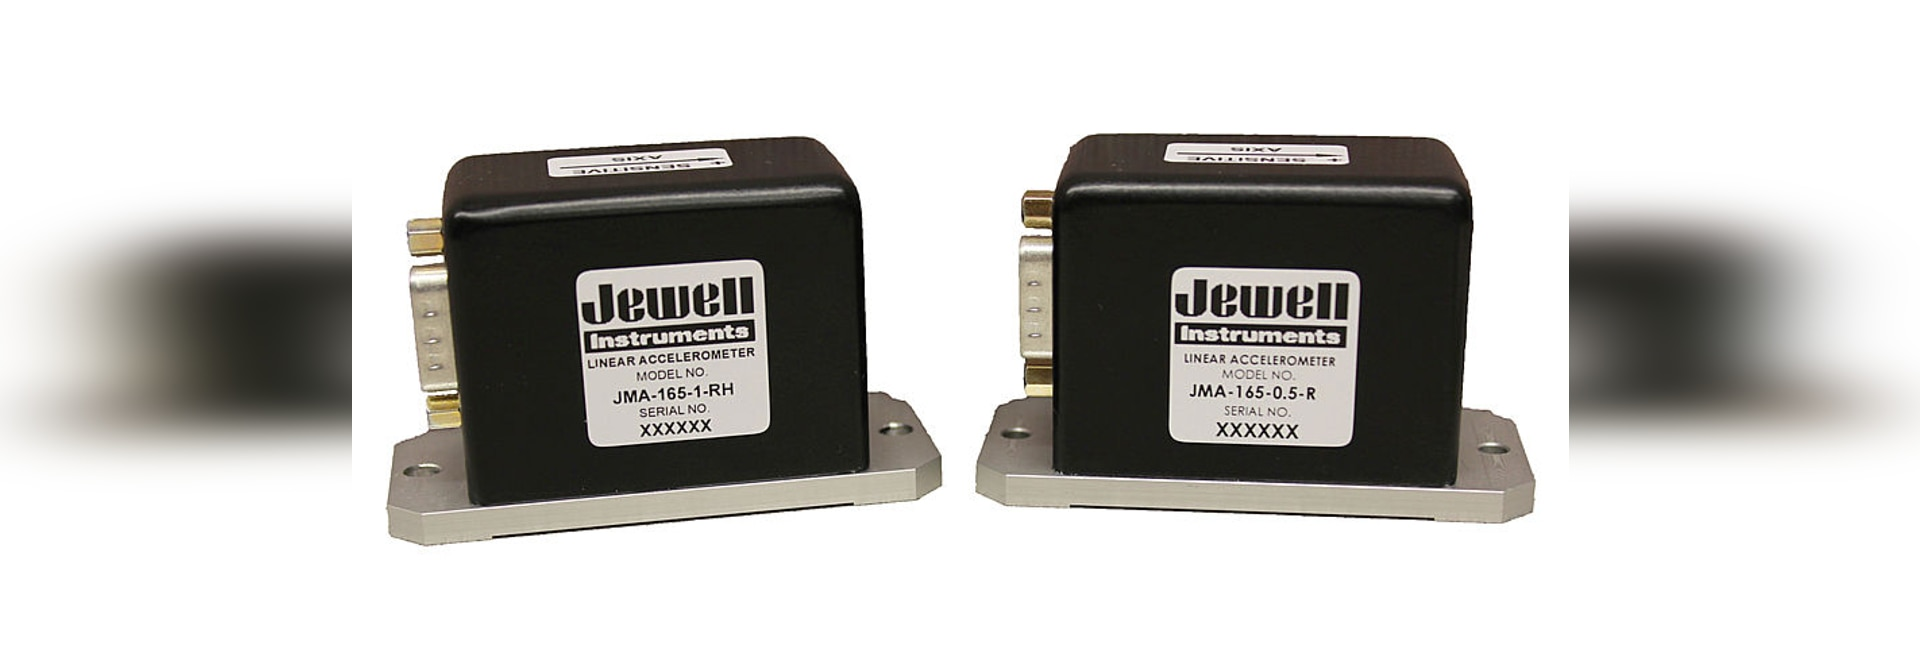 New CENELEC/AREMA Certified MEMS Accelerometers for Rail Transportation